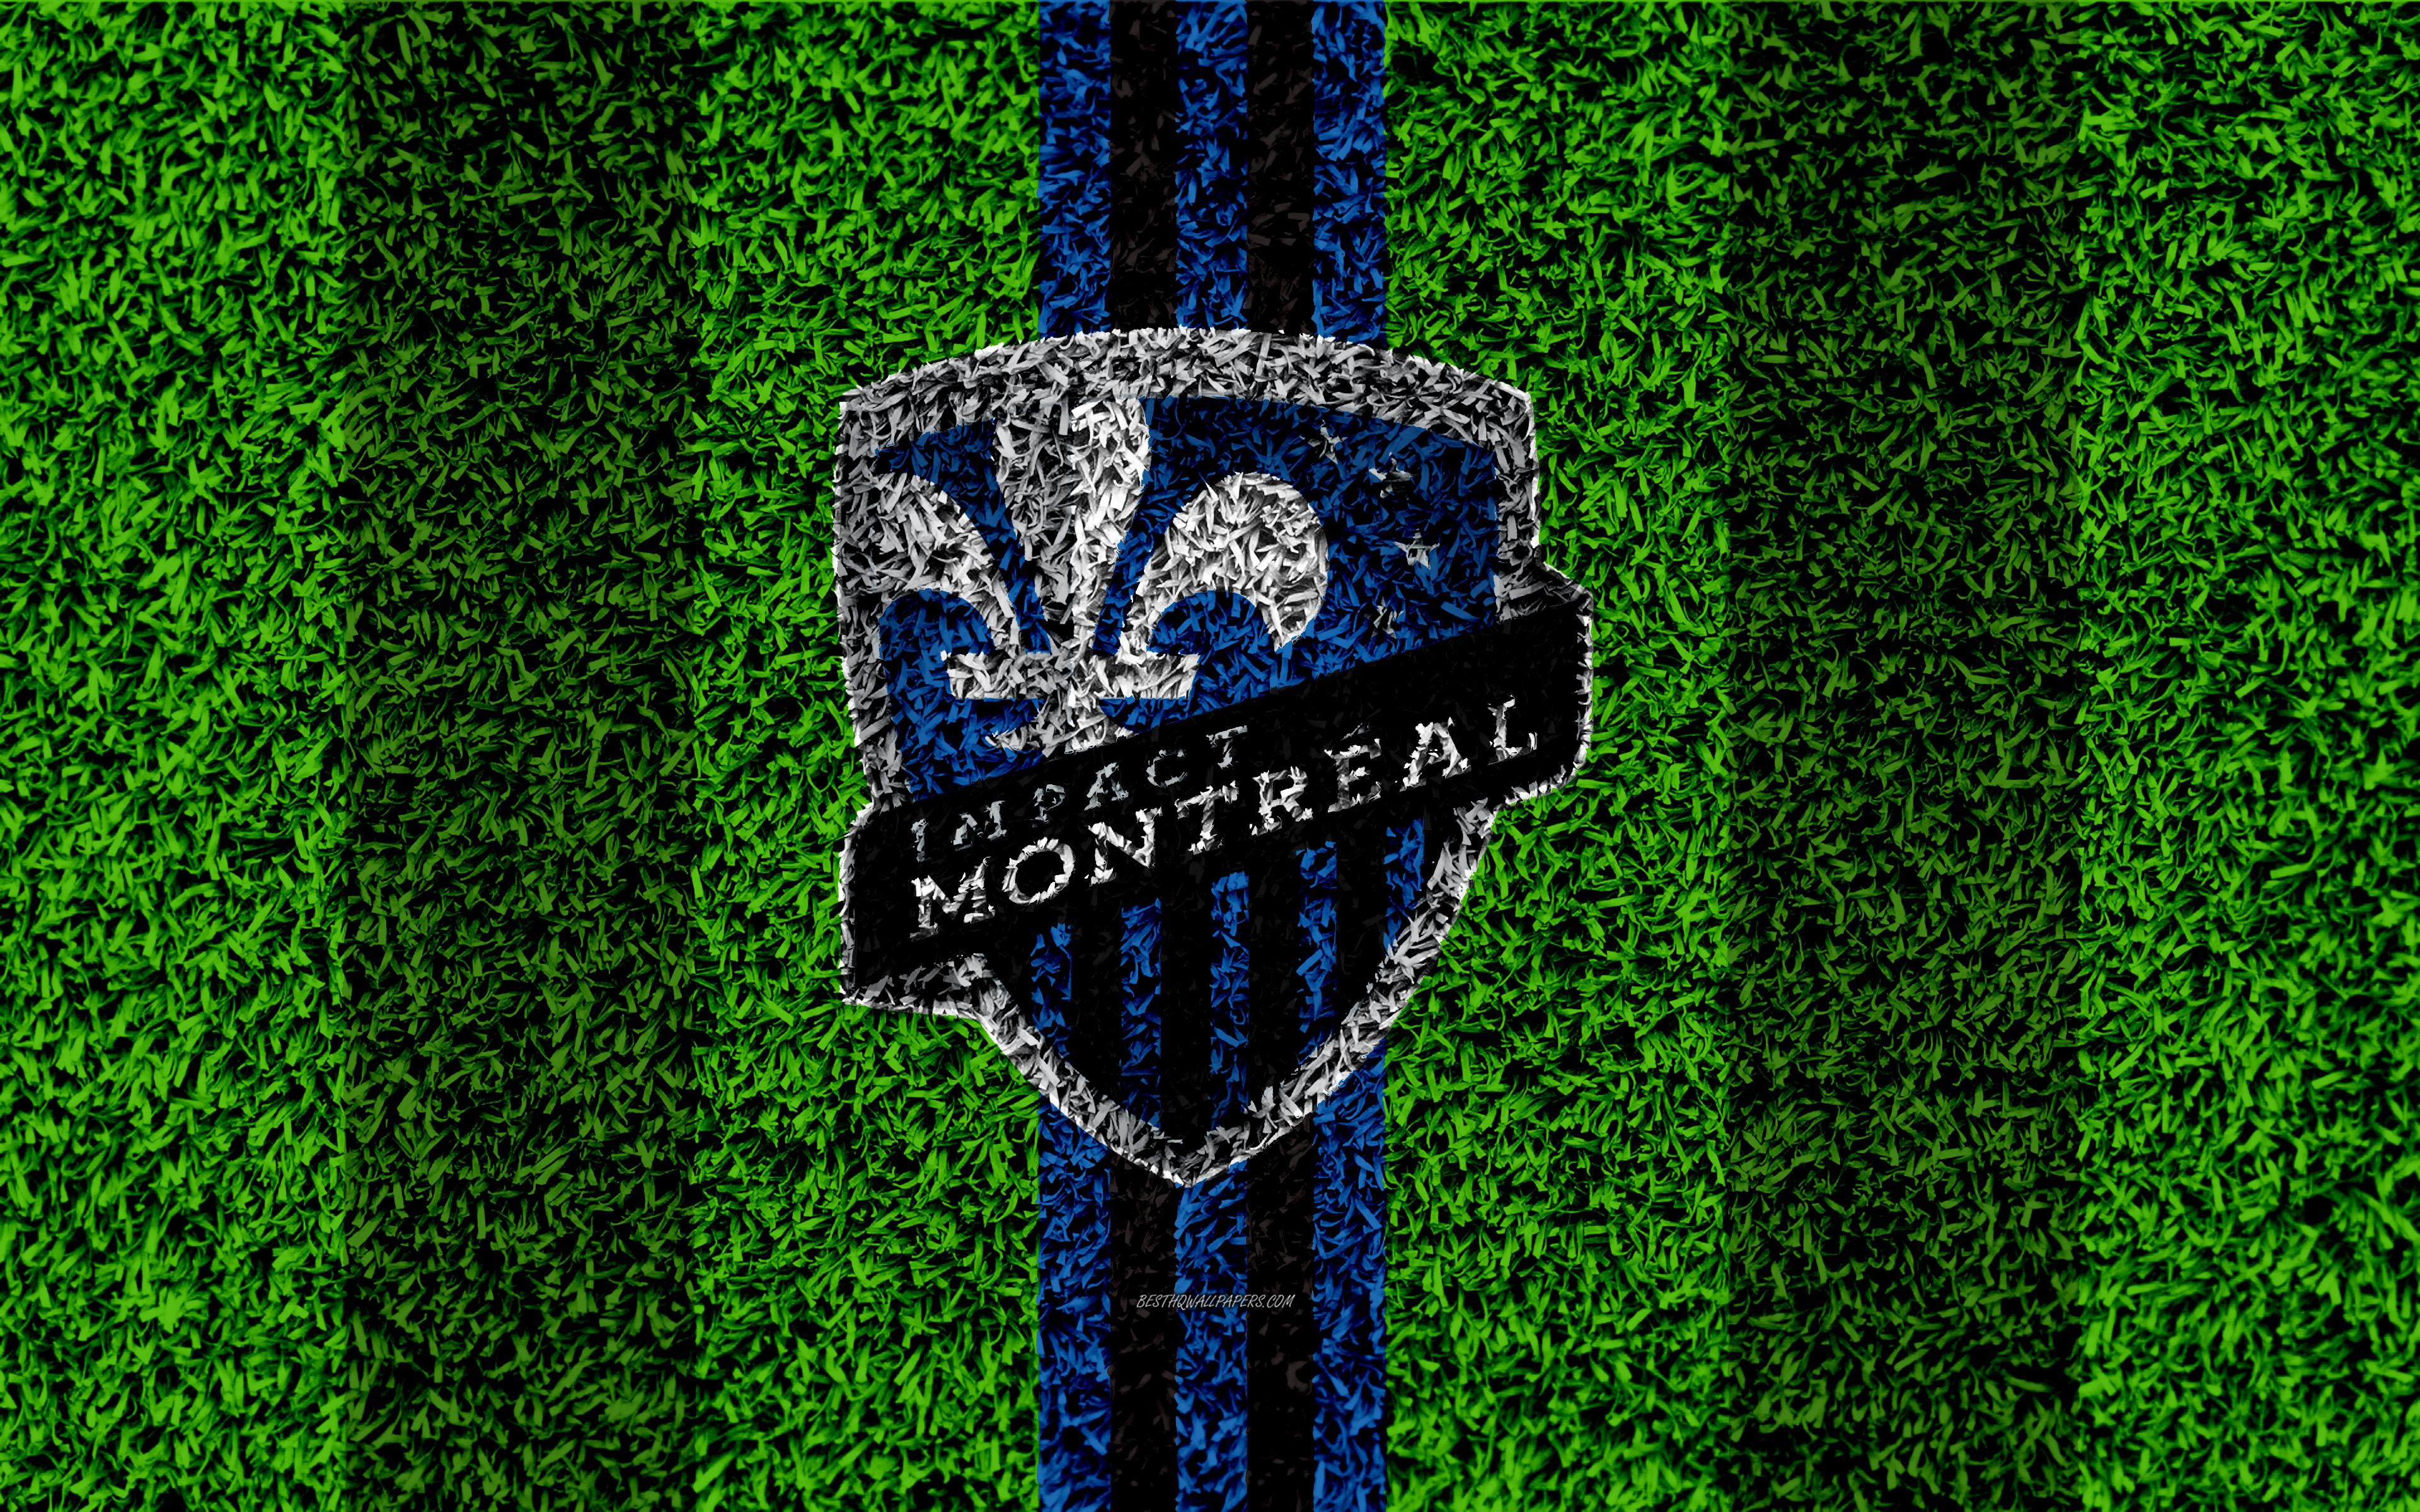 Download wallpapers Montreal Impact FC, 4k, MLS, football lawn, logo